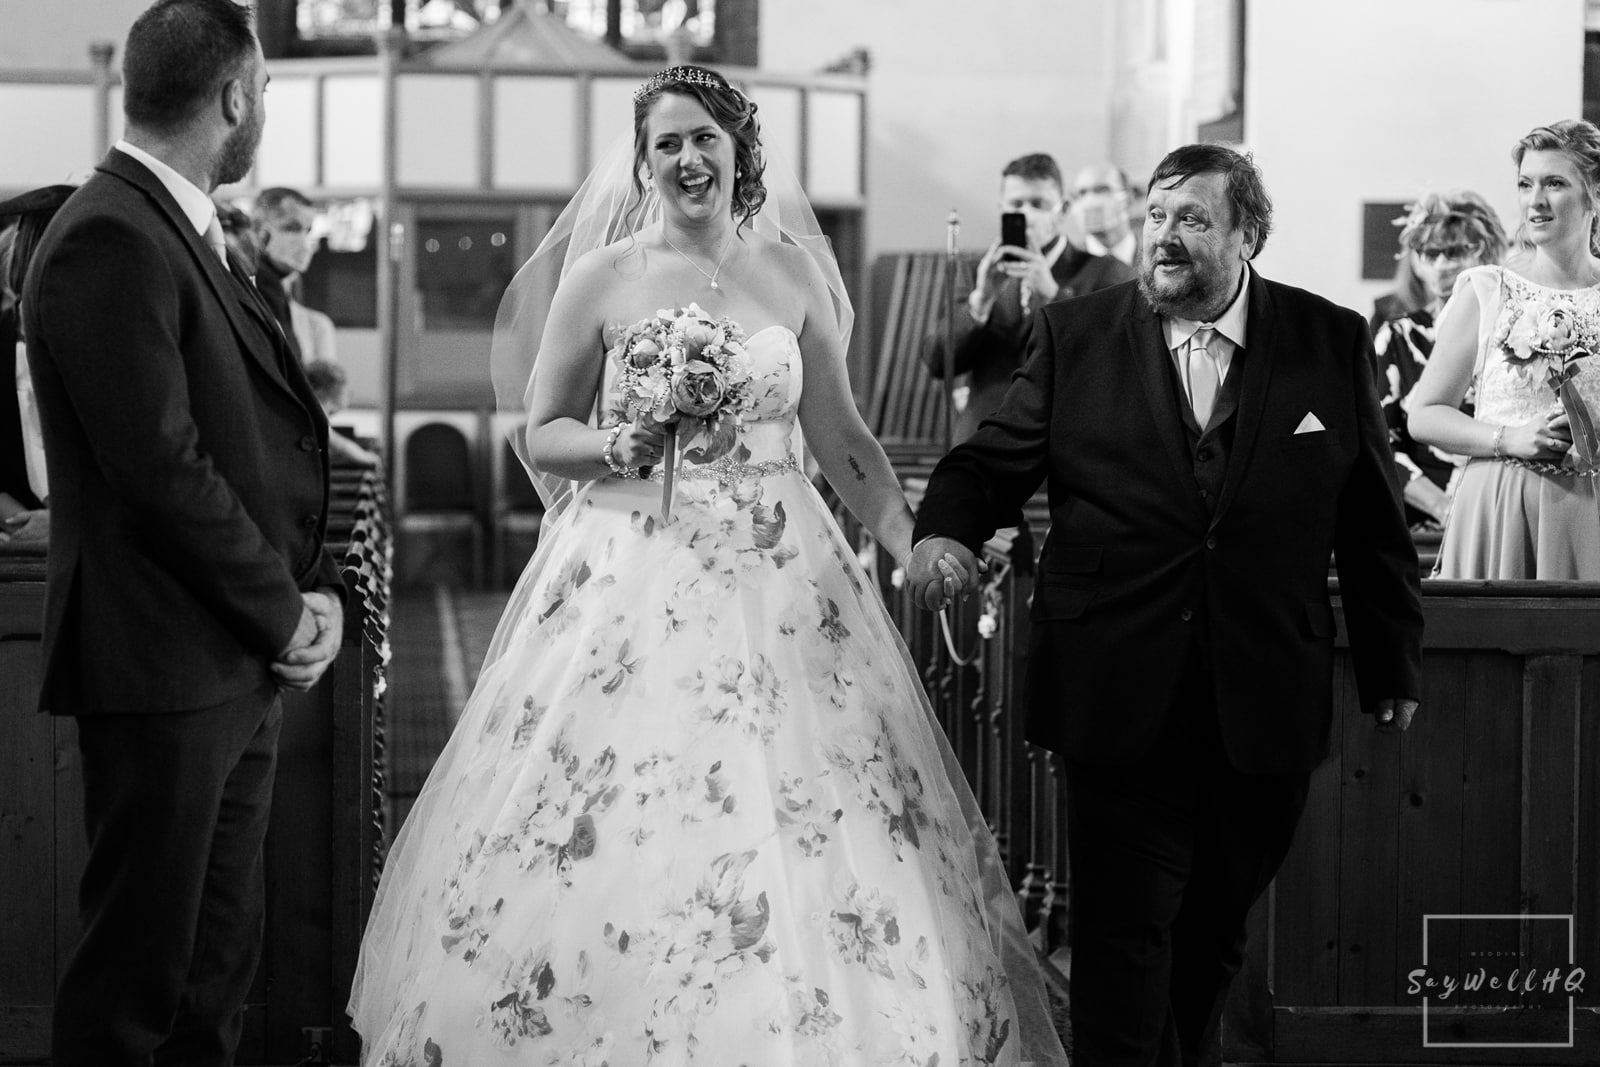 Lincoln wedding photographer - bride sees here groom for the first time and is so happy